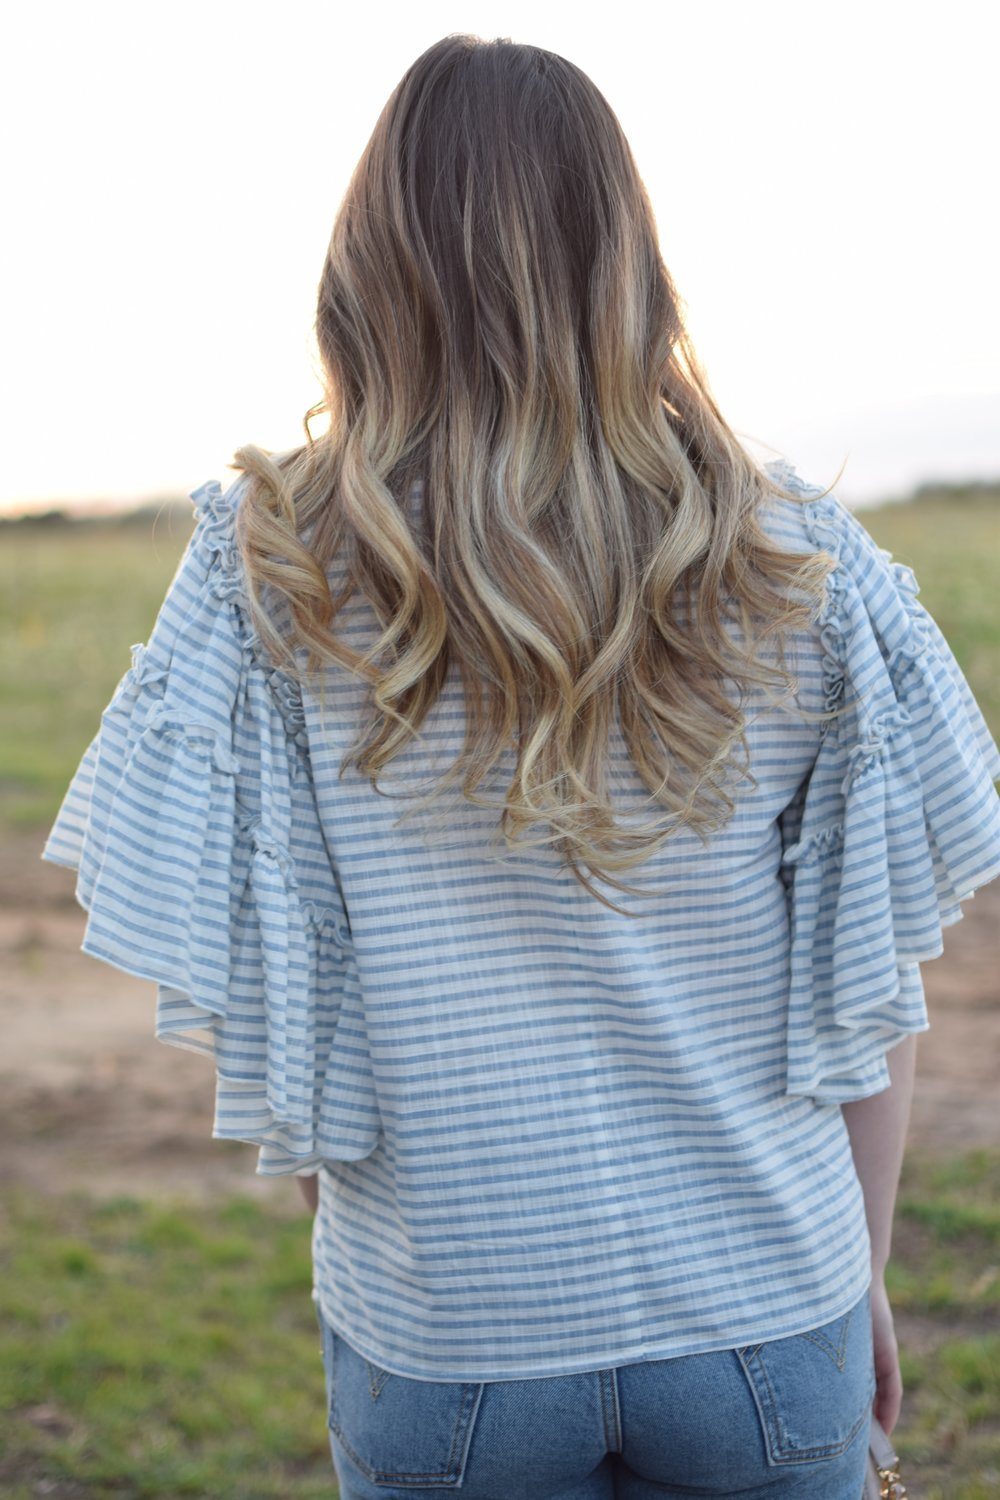 striped ruffle sleeve top / spring outfit idea / hair goals / balayage